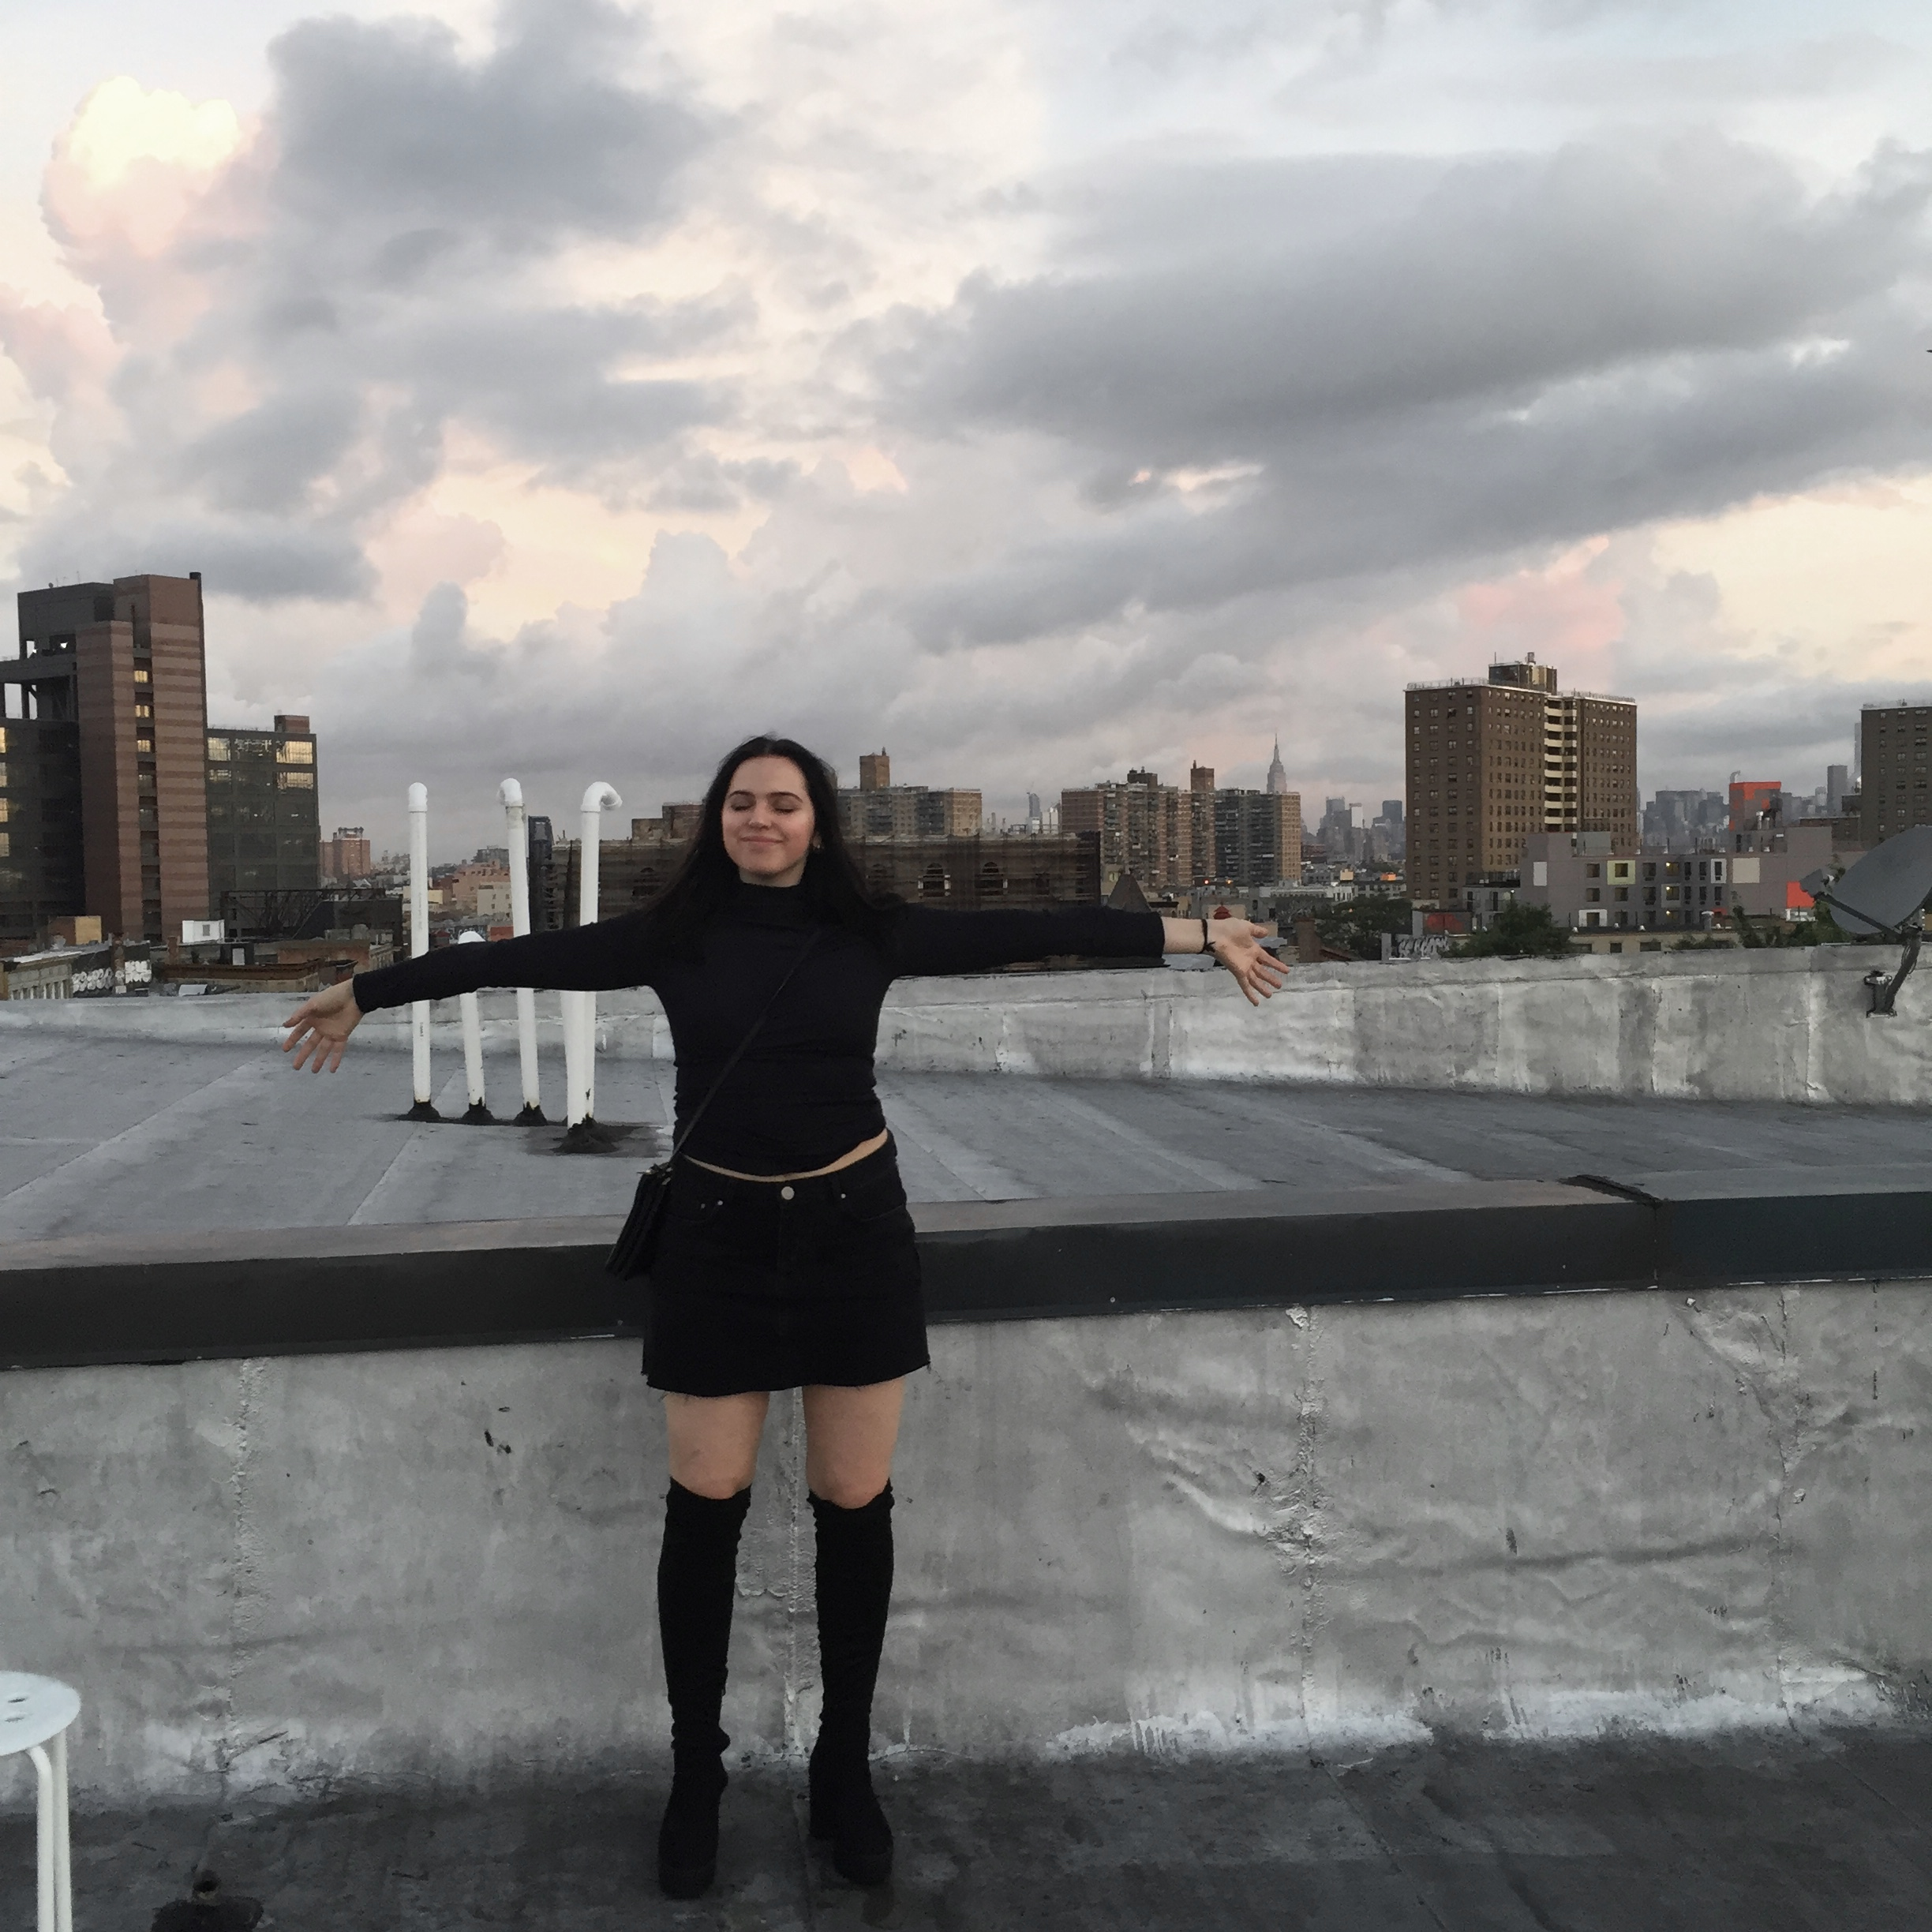 this was taken at 6 am on my best friend's rooftop after a night out with close friends, we watched the sunrise and it became one of my favourite memories.